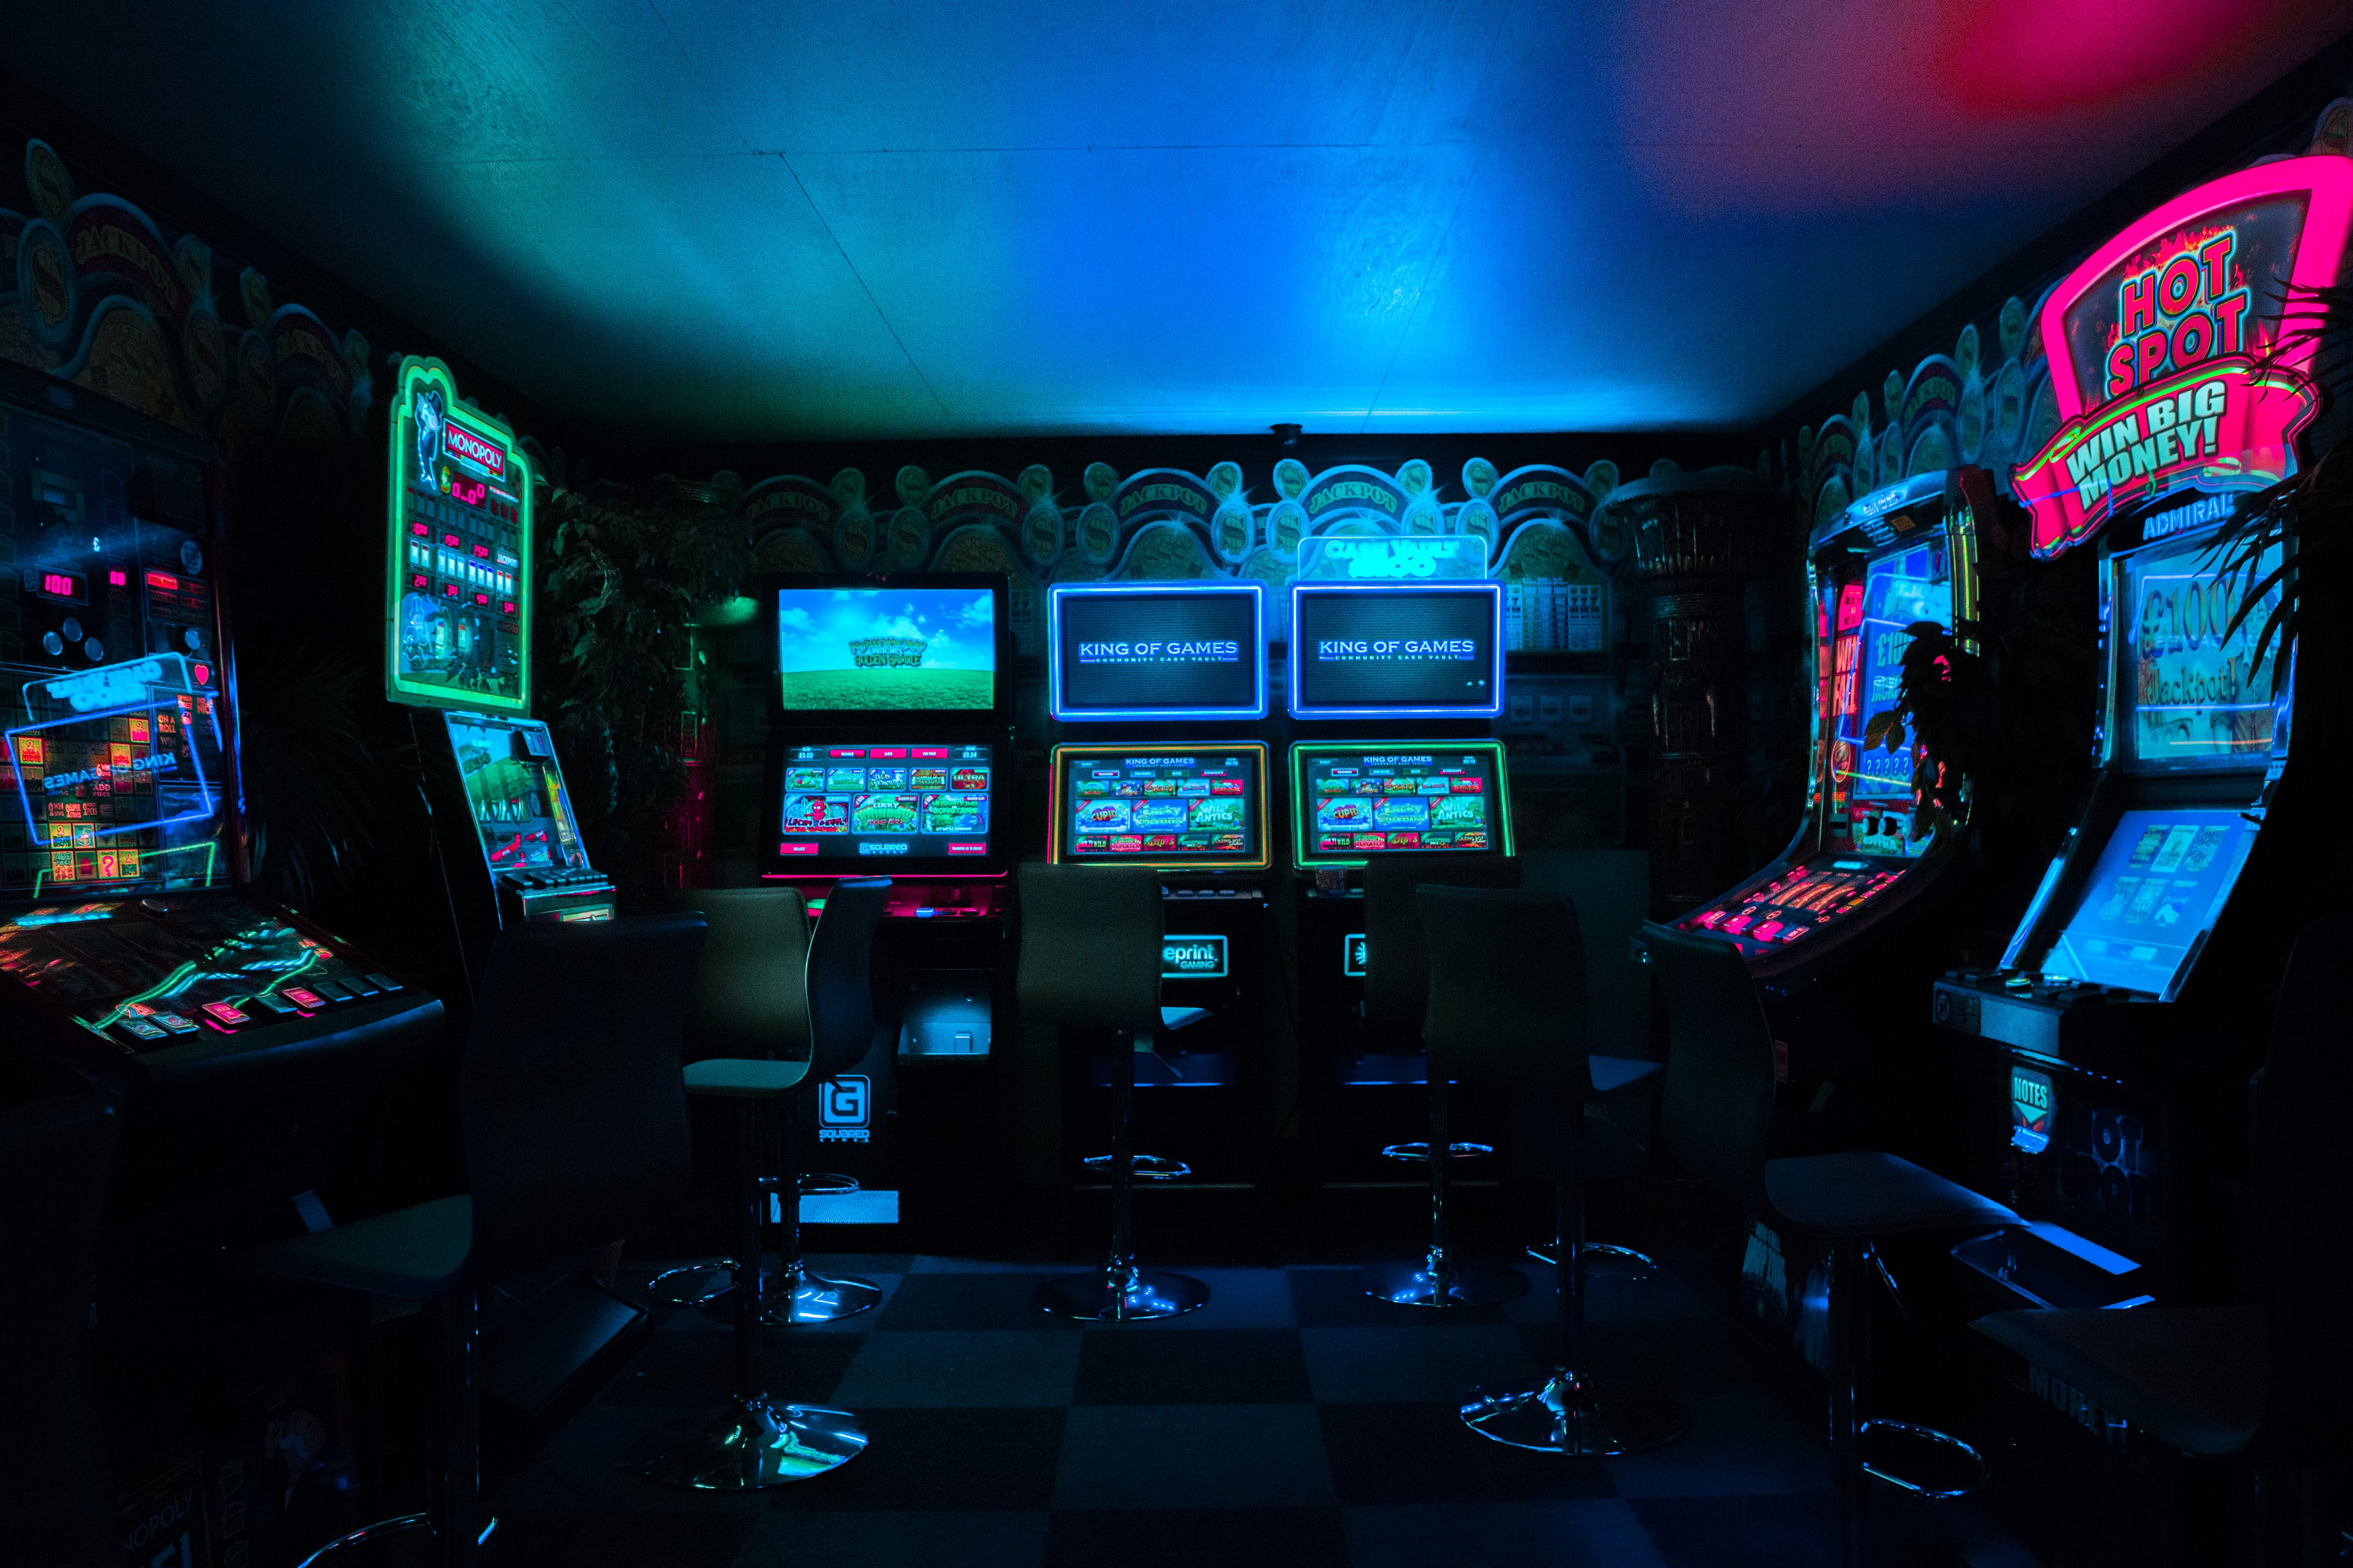 A photo inside an arcade with over-saturated neon lights behind the machines